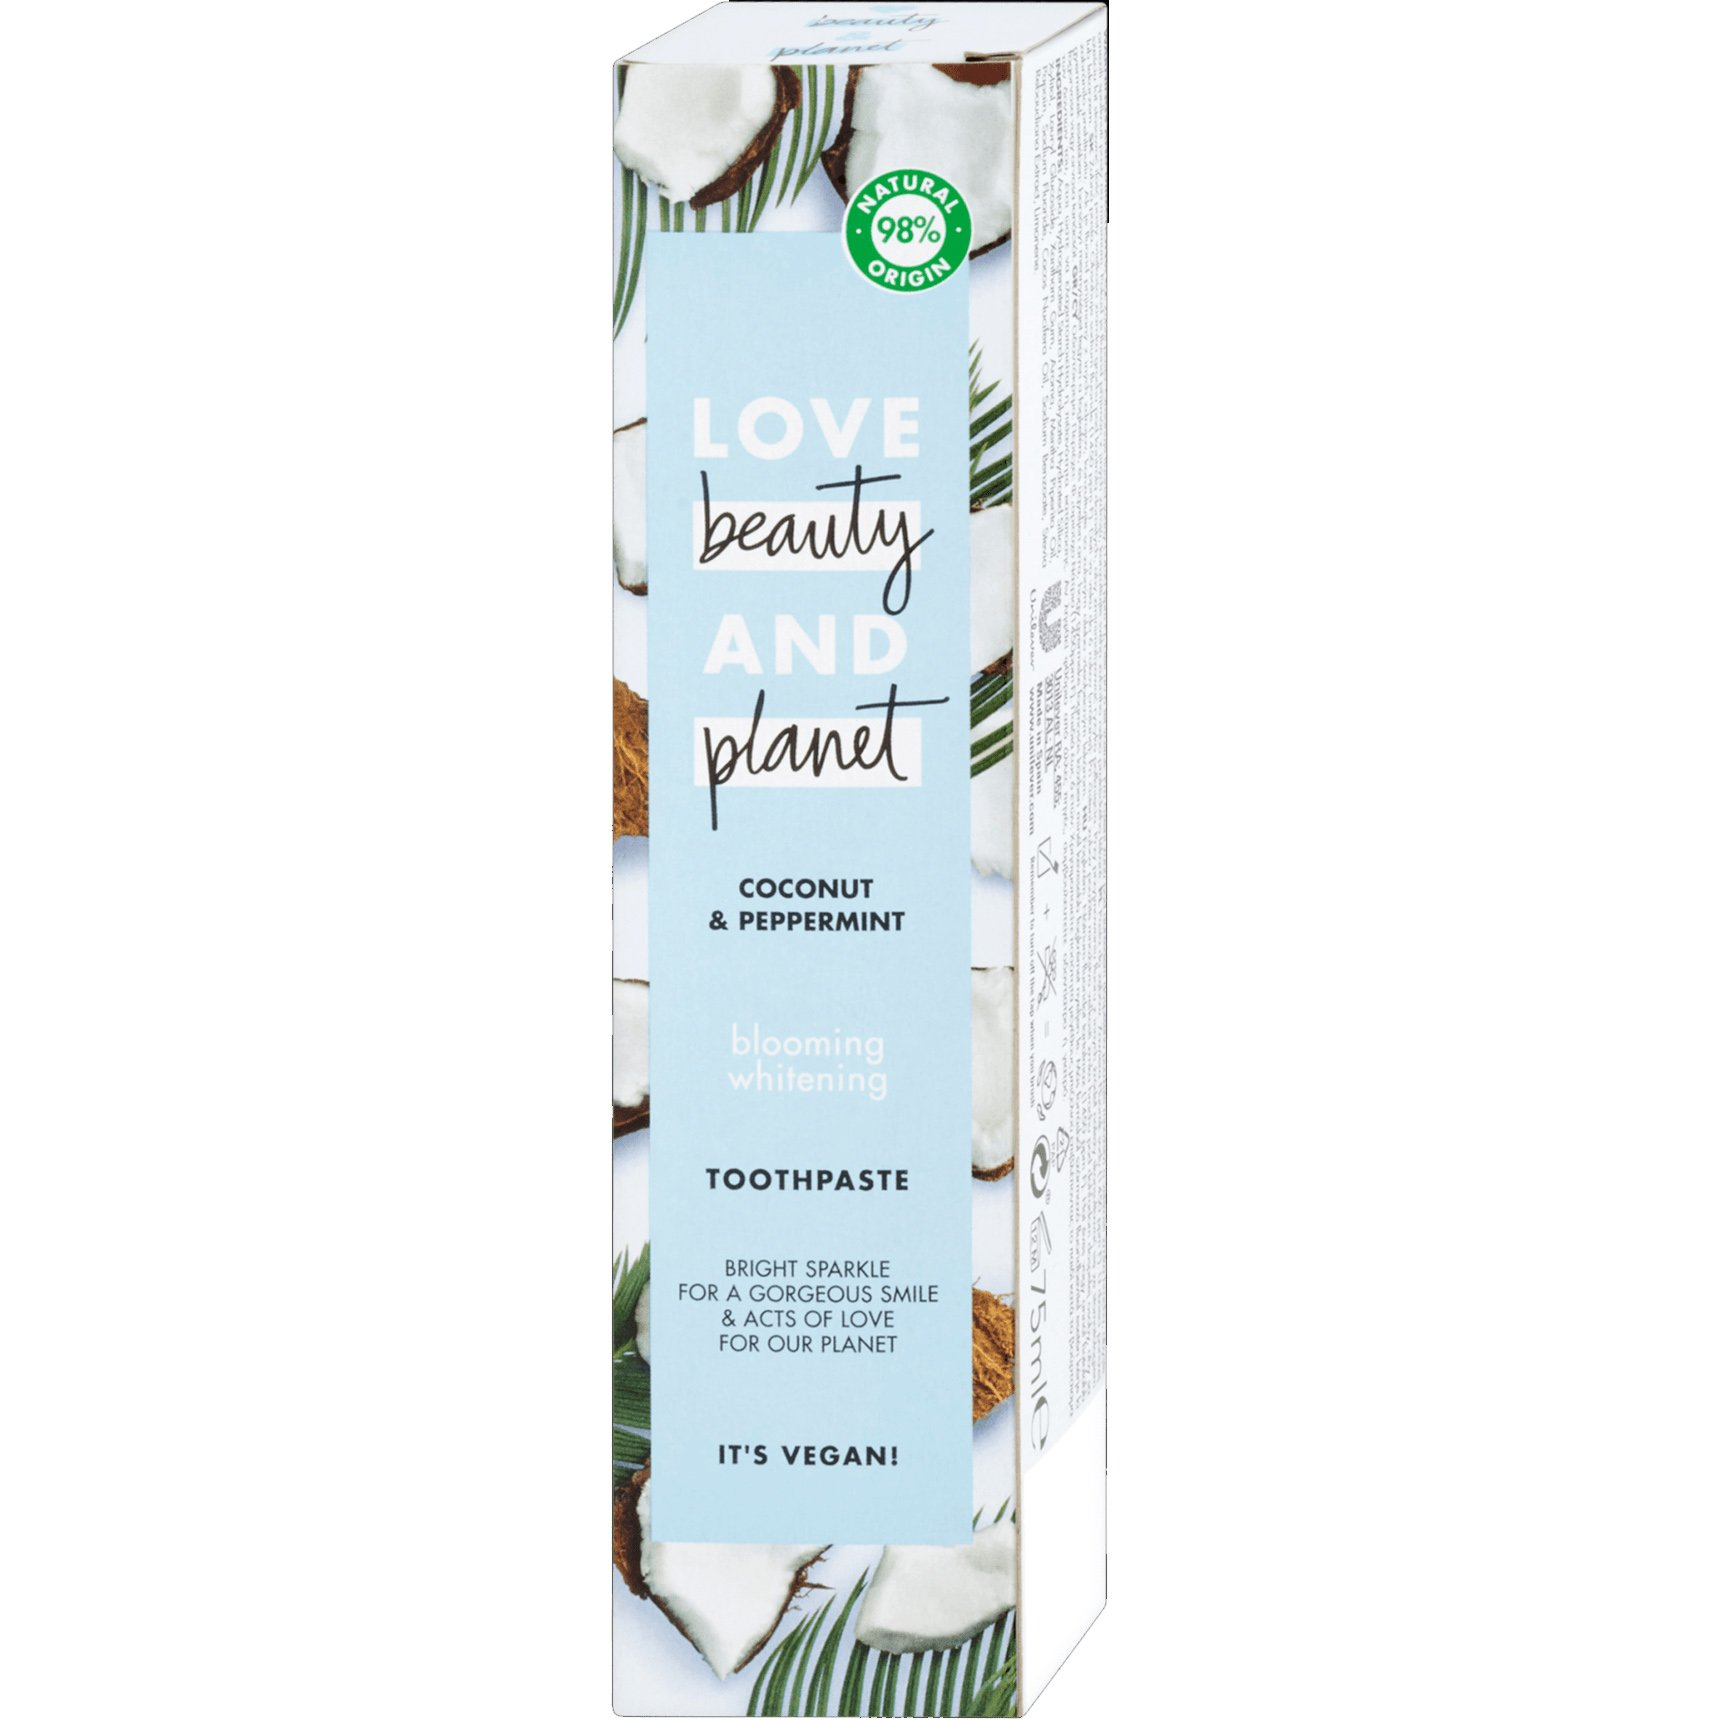 Love Beauty & Planet Coconut & Peppermint Blooming Whitening Toothpaste Οδοντόκρεμα για Λαμπερό & Λευκό Χαμόγελο 75ml